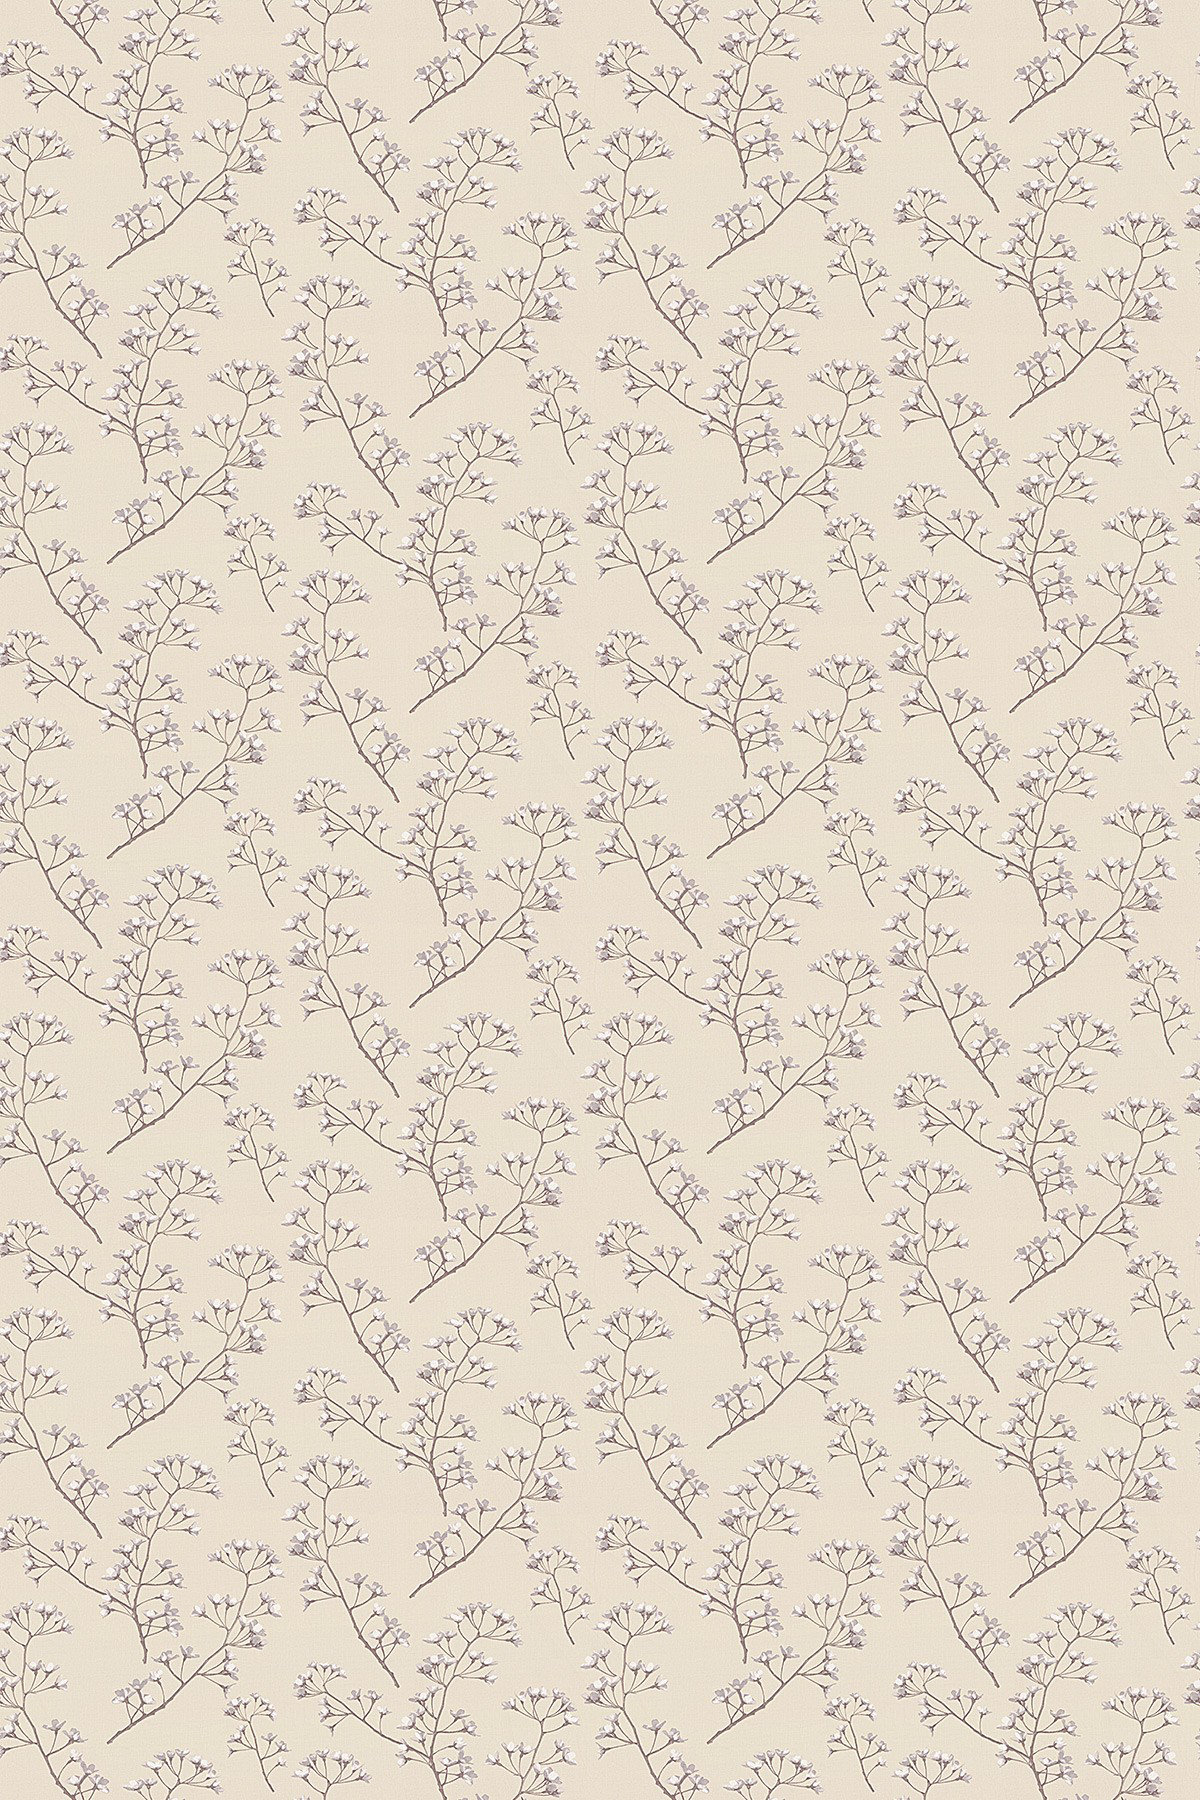 Image of Jocelyn Warner Fabric Blossom, JWF-1303